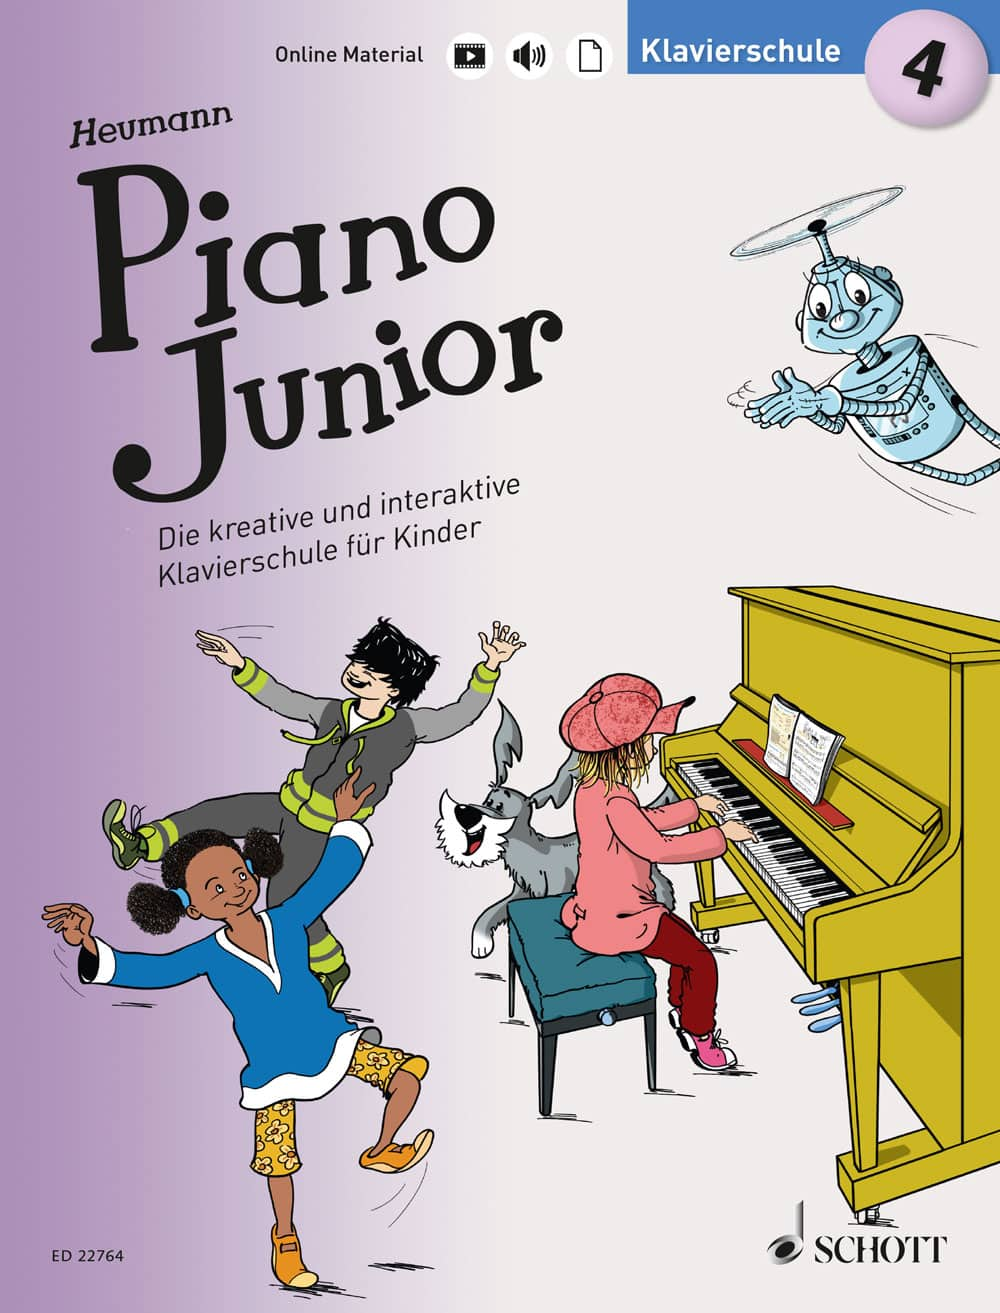 Piano Junior: Klavierschule, Band 4